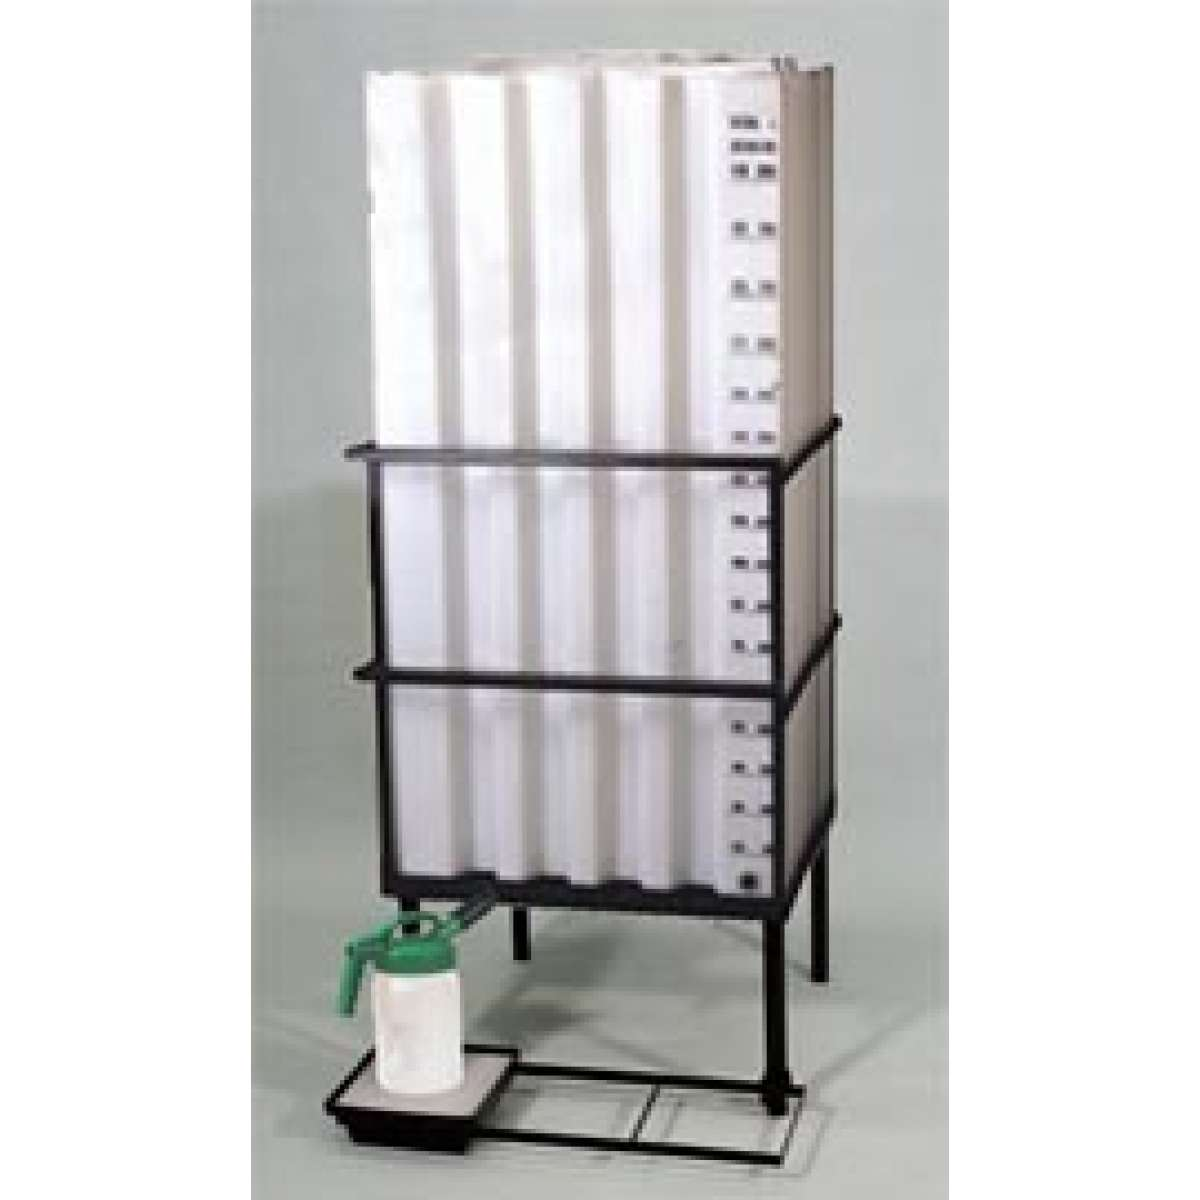 230 Gallon (870 L) Poly Container System